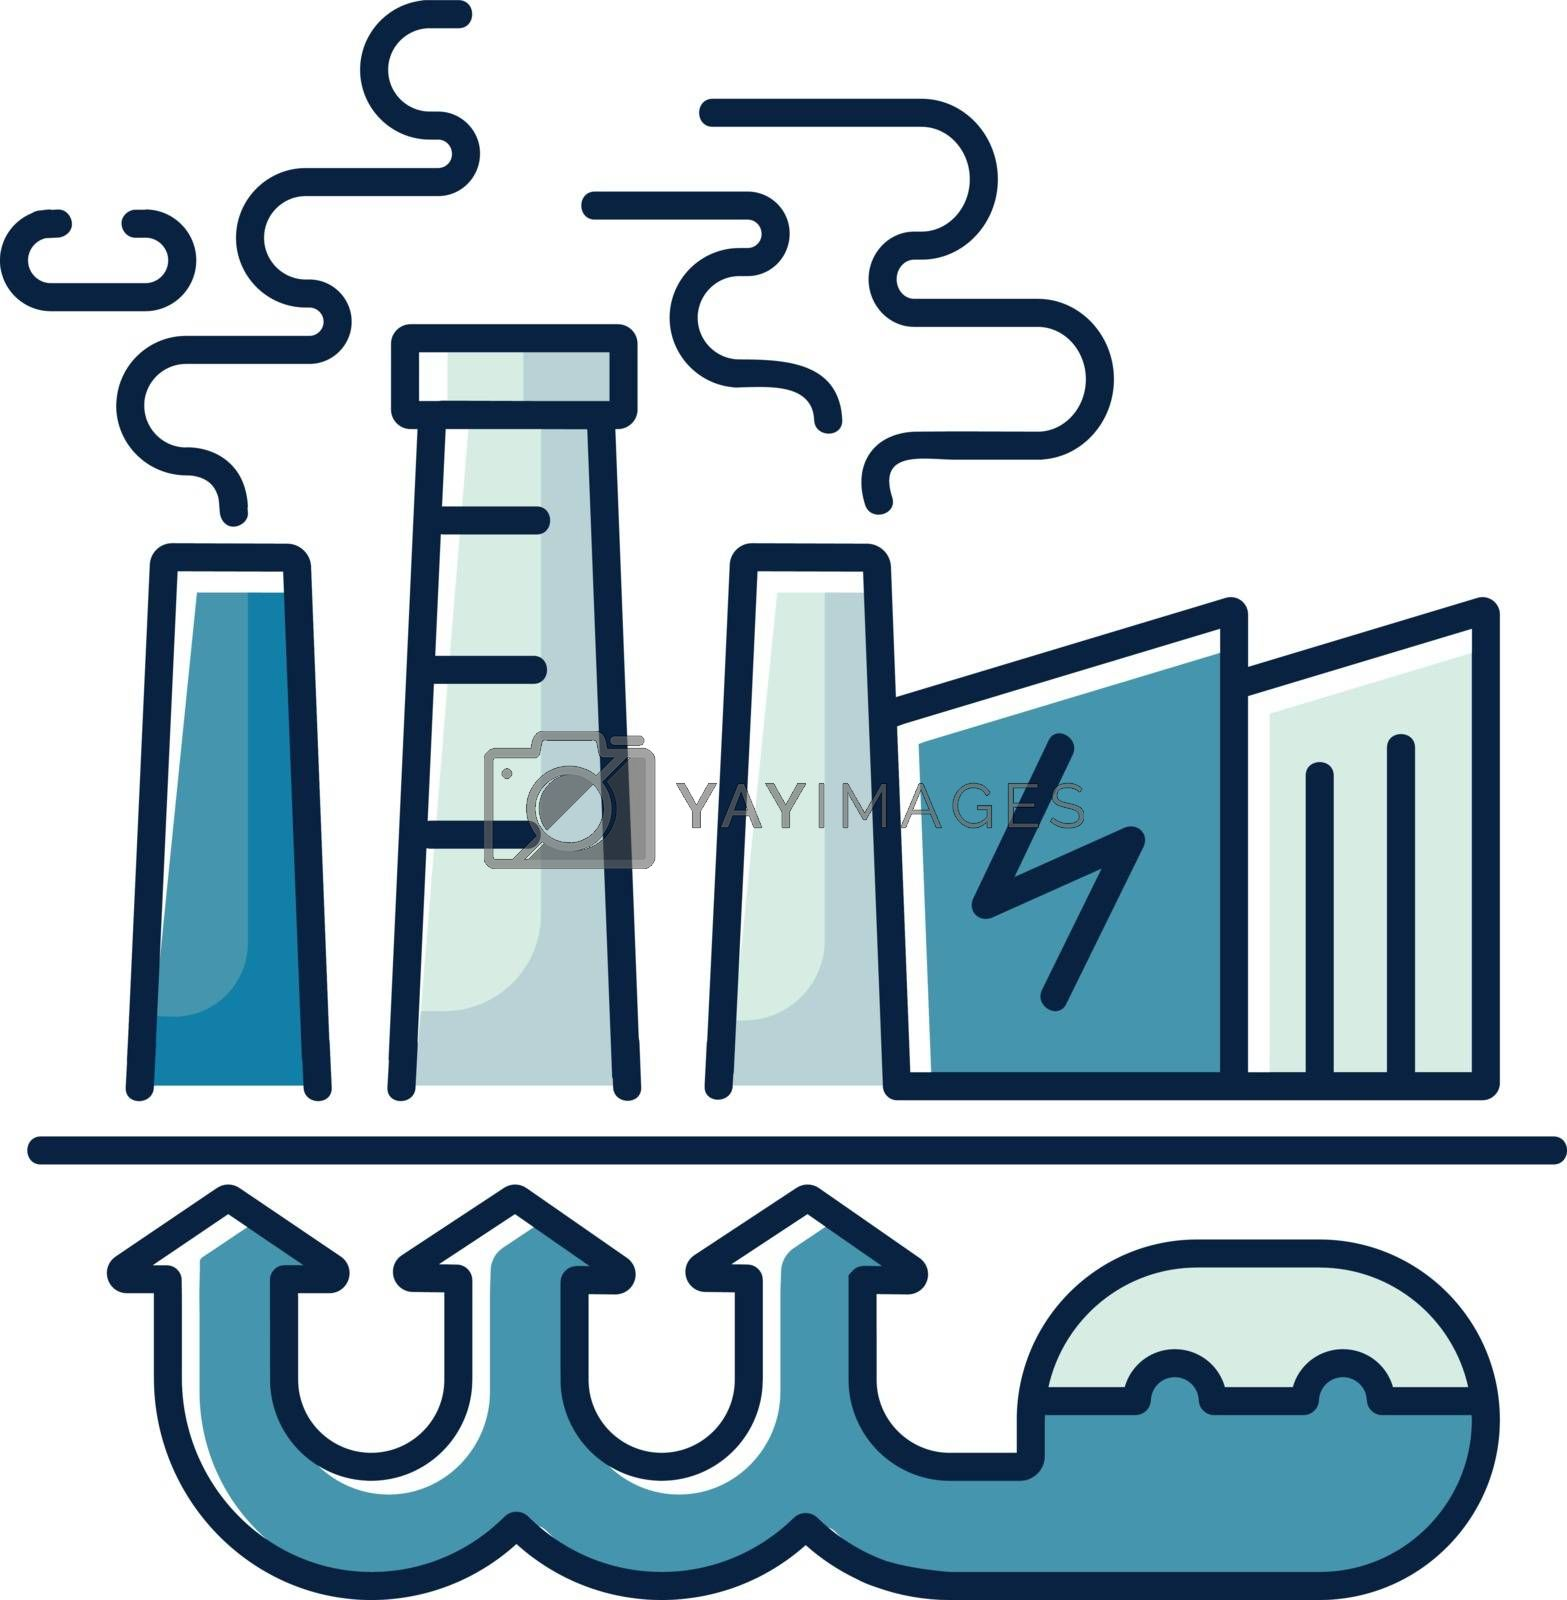 Geothermal energy RGB color icon. Industrial power plant, thermal station. Using renewable natural resources, sustainable energy. Isolated vector illustration